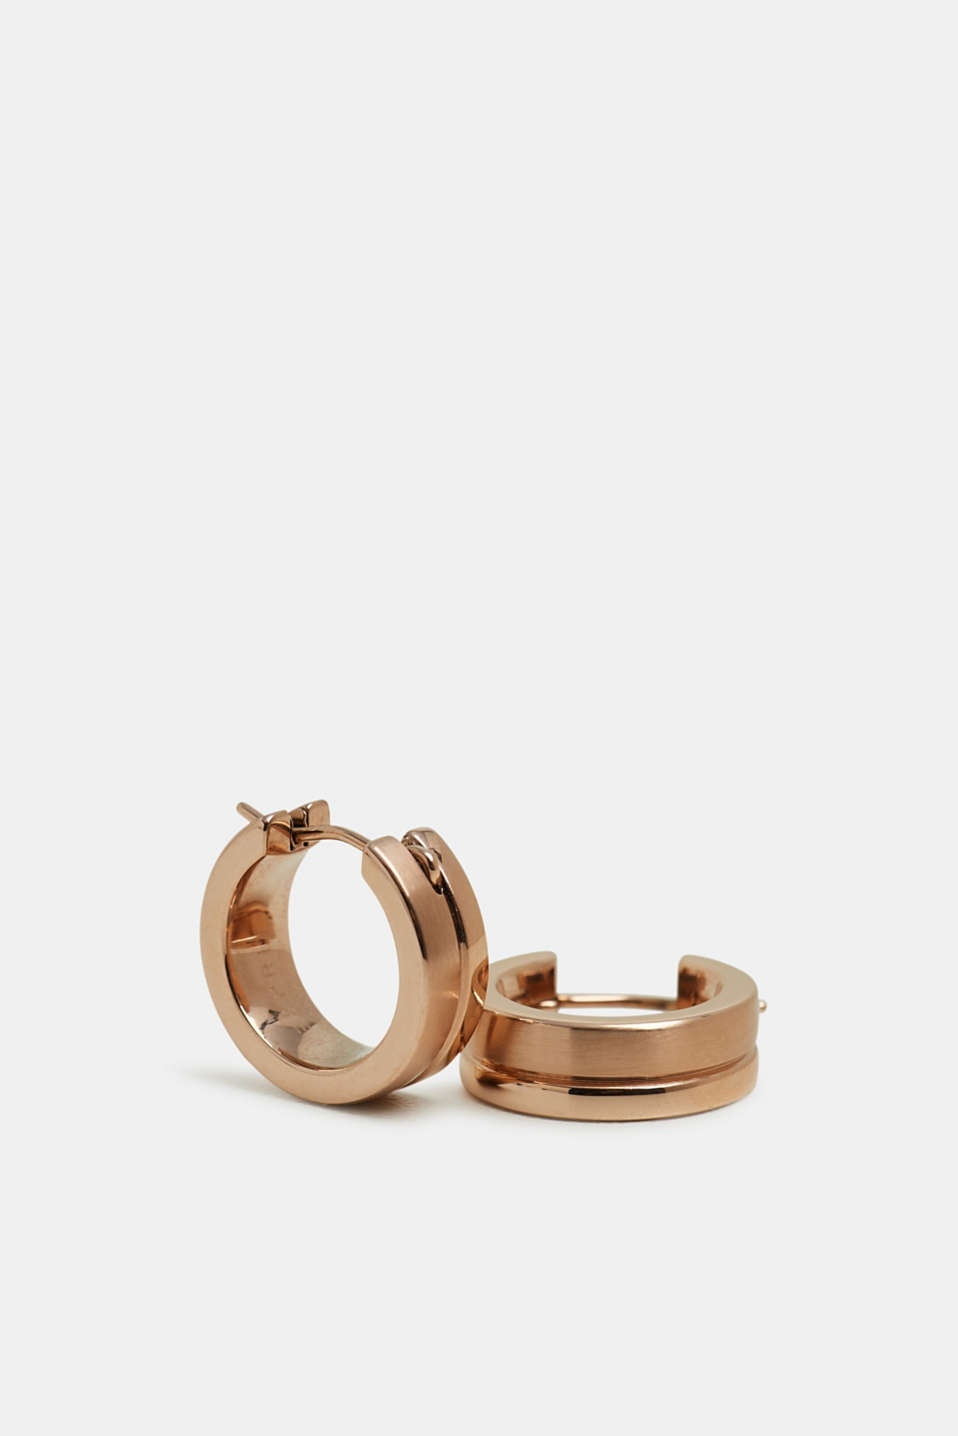 Stainless-steel hoop earrings, ROSEGOLD, detail image number 0